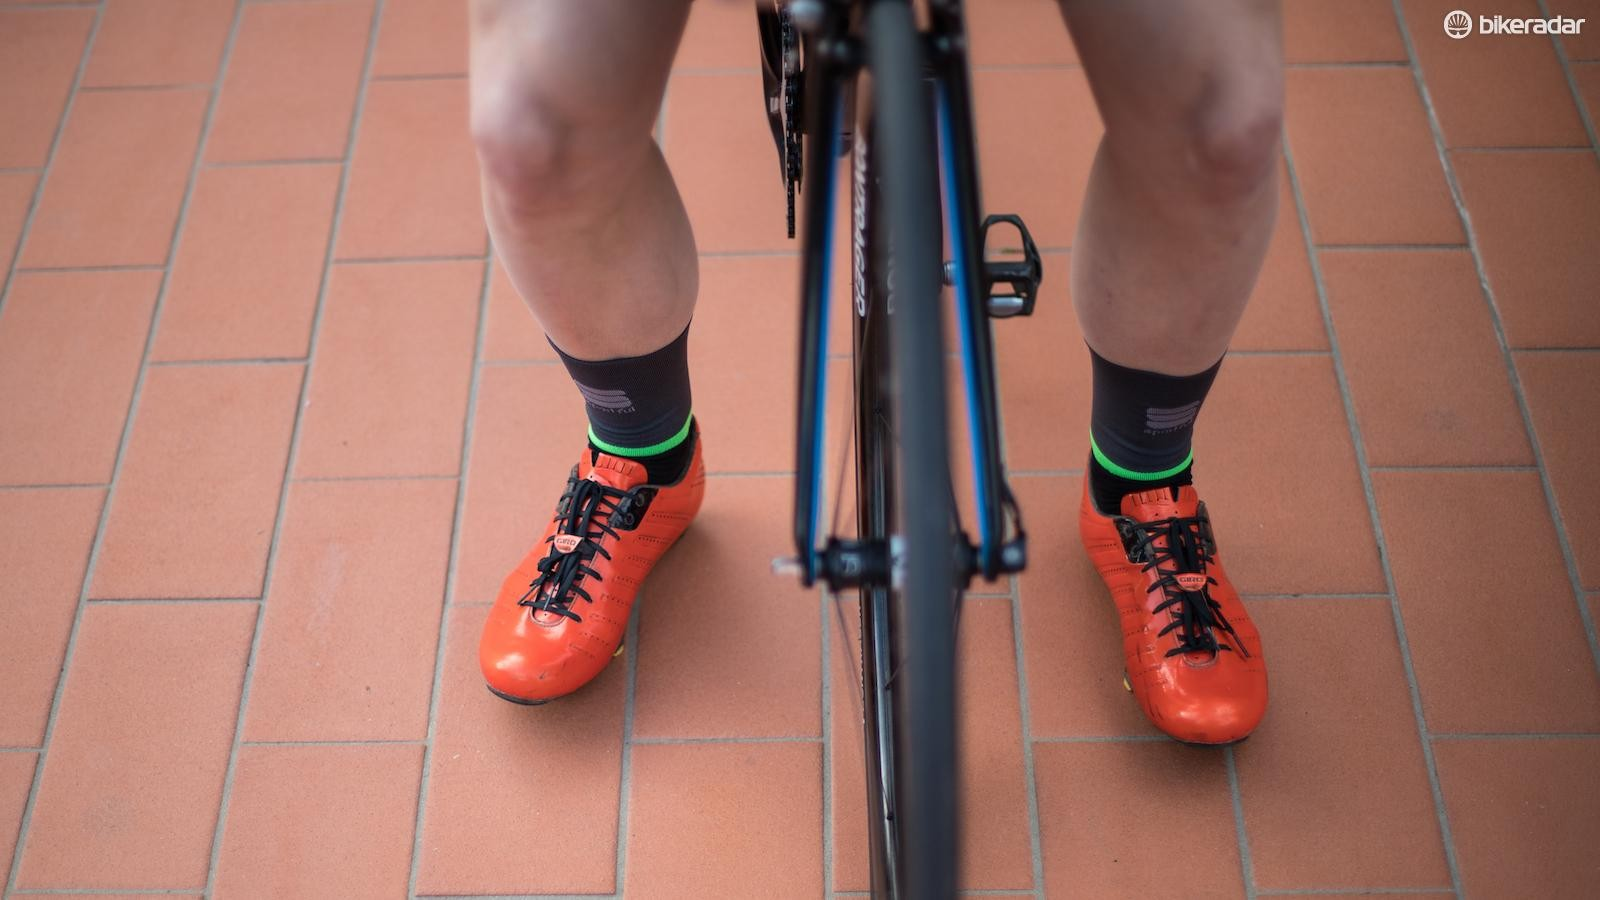 The Giara socks have highlighted details for visibility